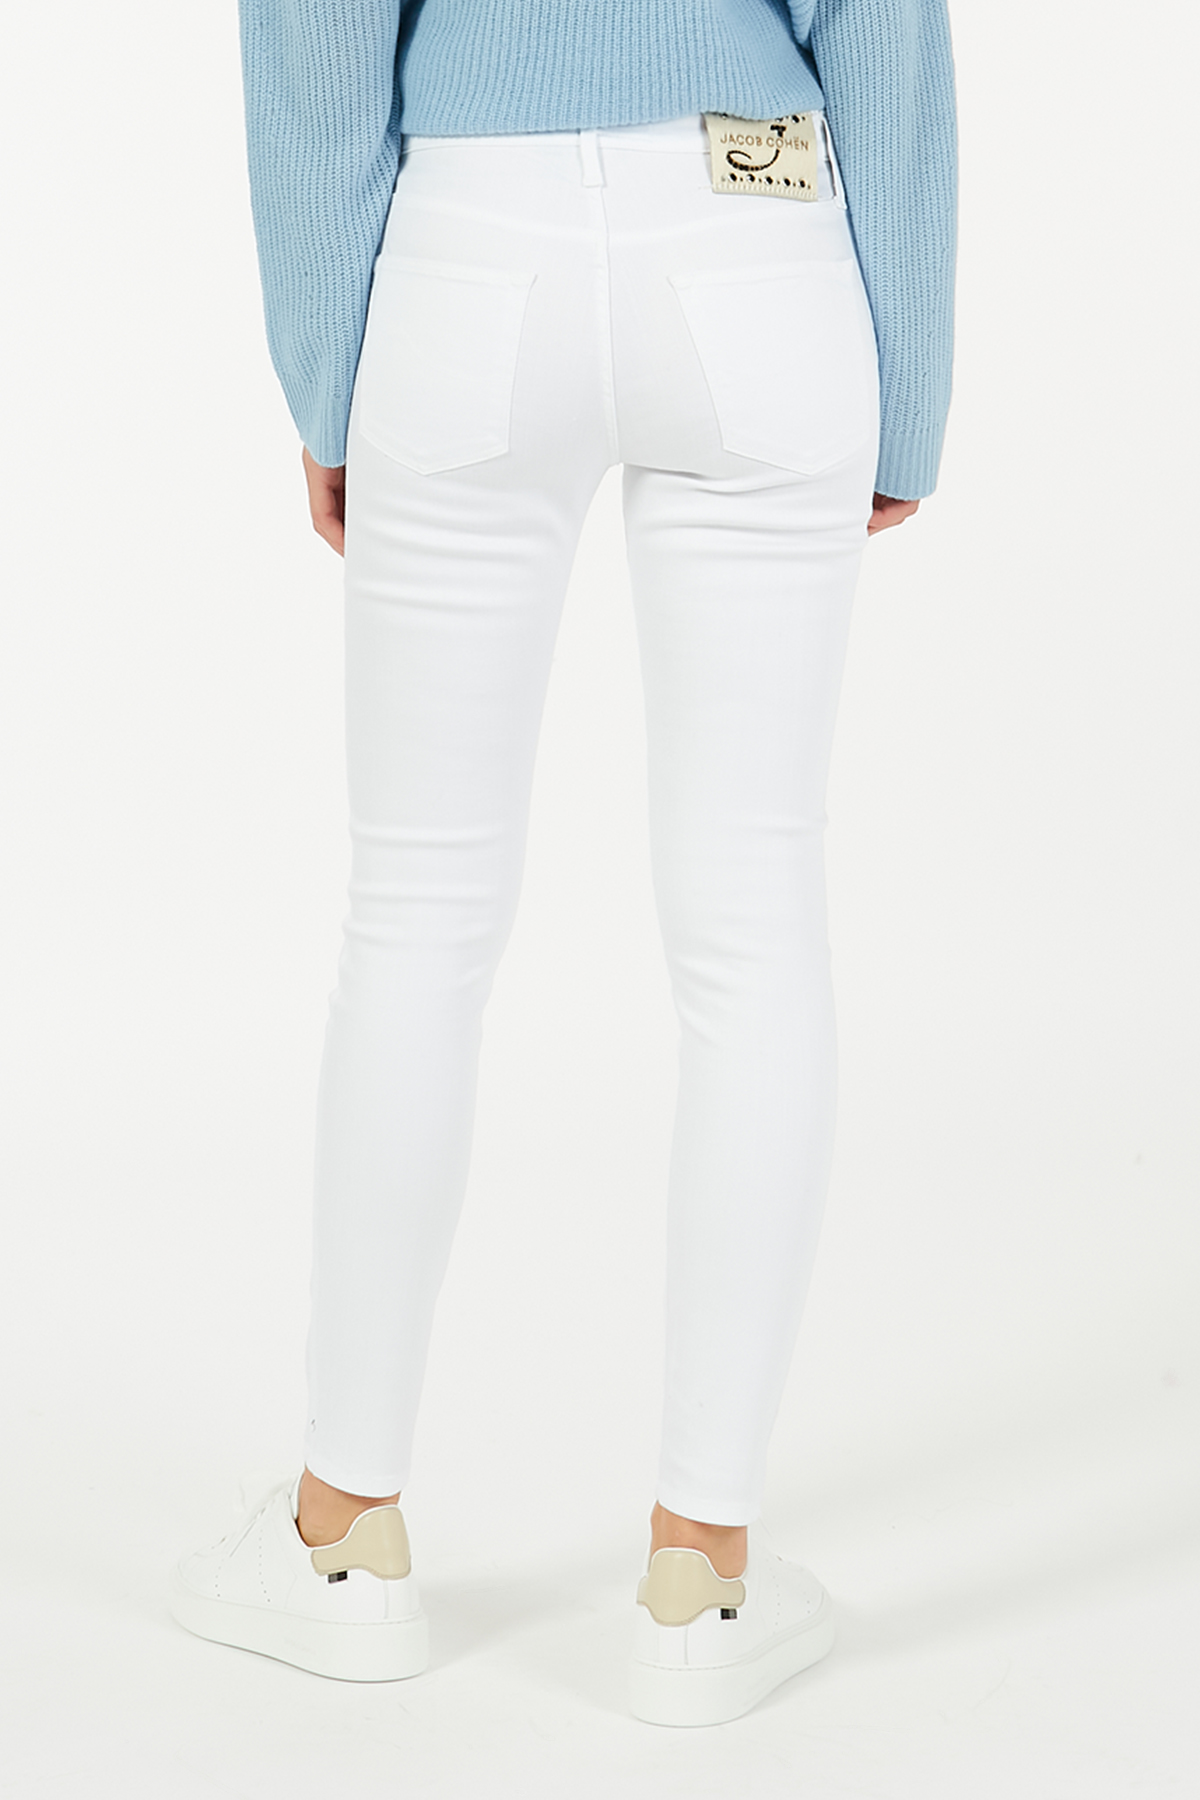 Jeans Kimberly Crop West